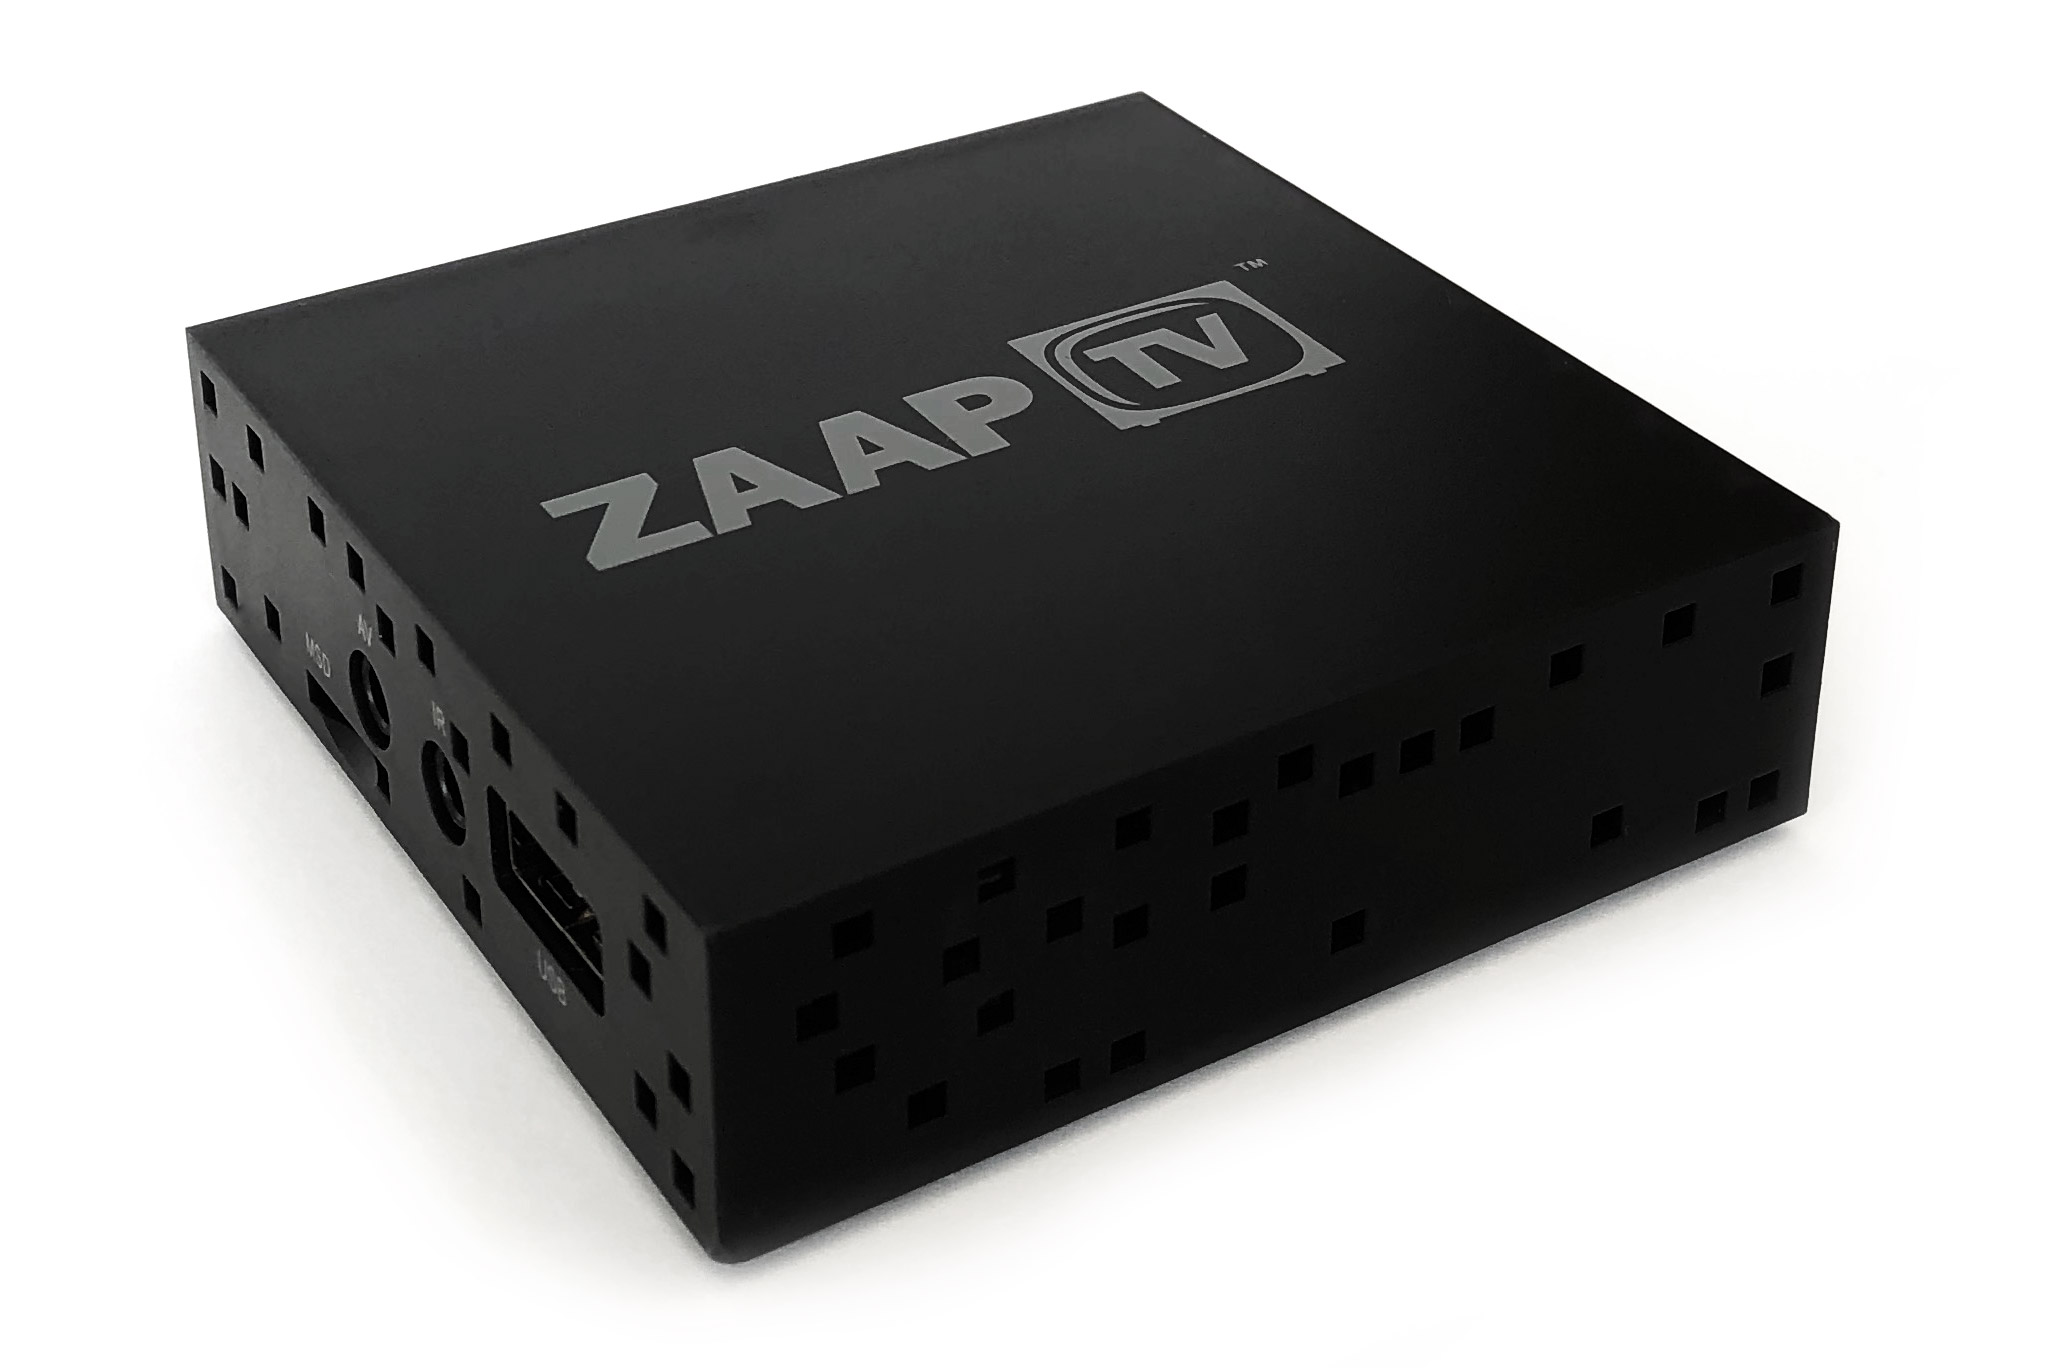 zaapTV HD709N IPTV Media Player